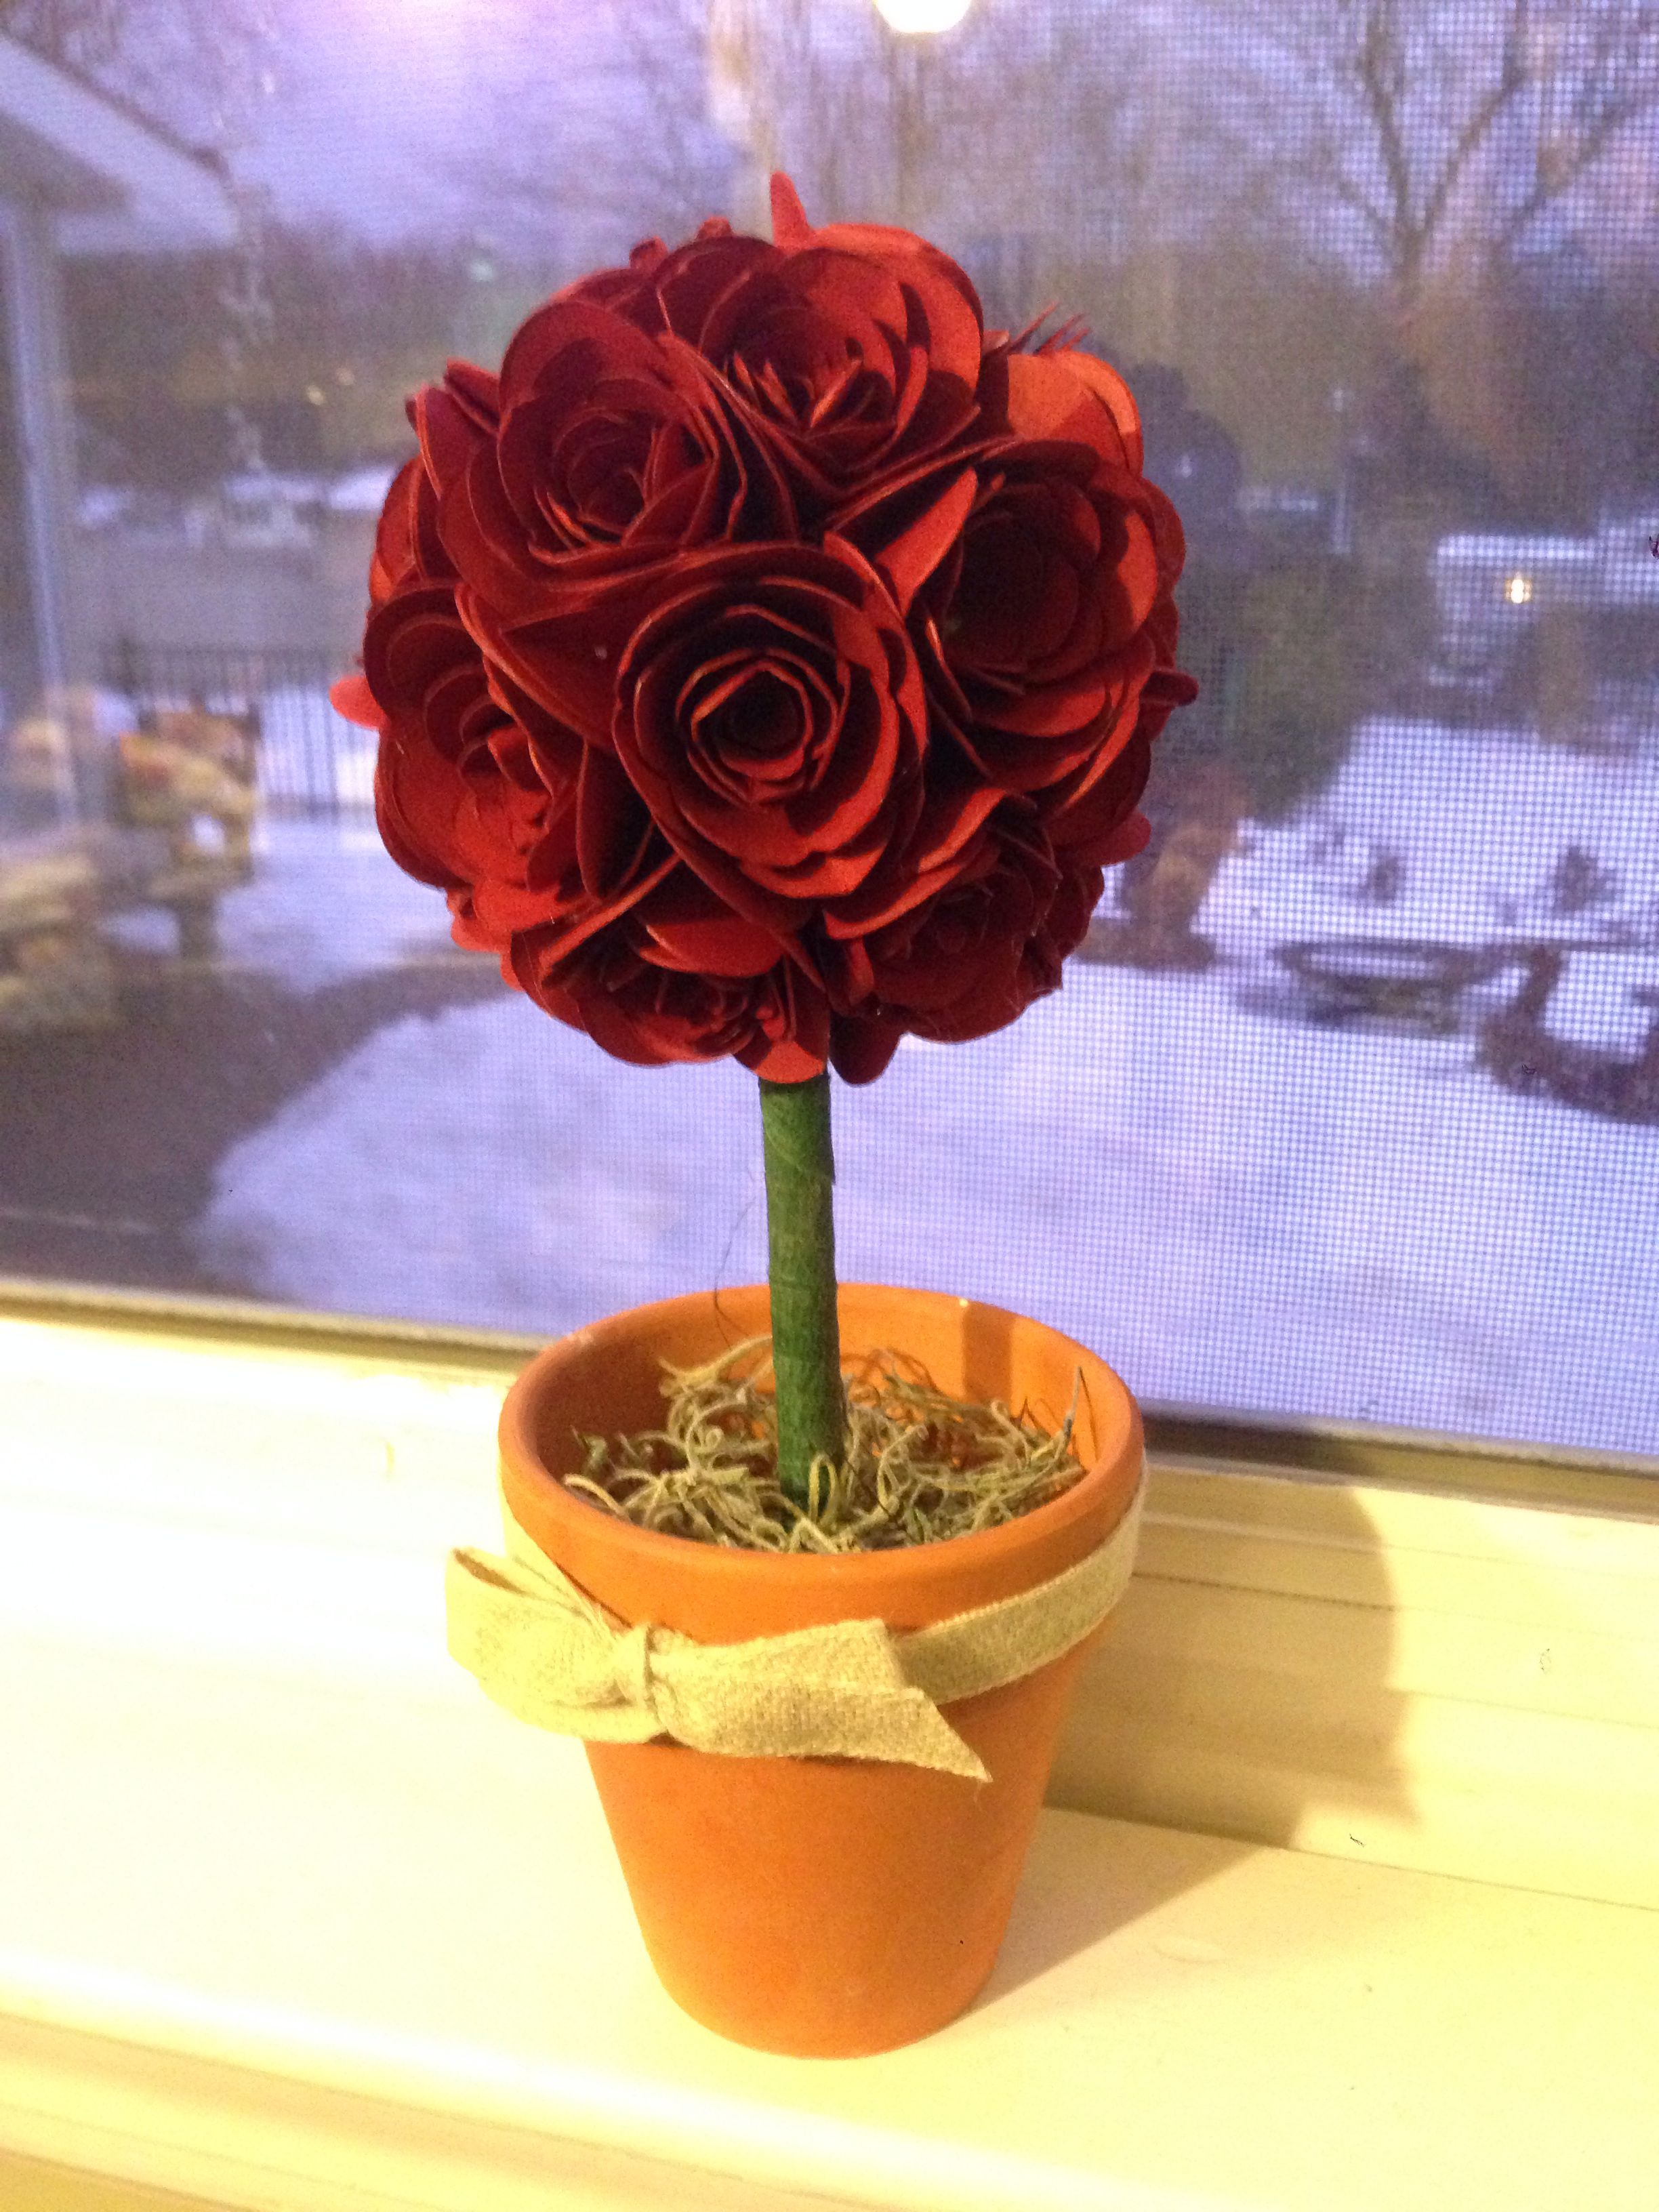 Made this little topiary with the Stampin' Up! Spiral Flower originals die, a styrofoam ball, and a glue gun.